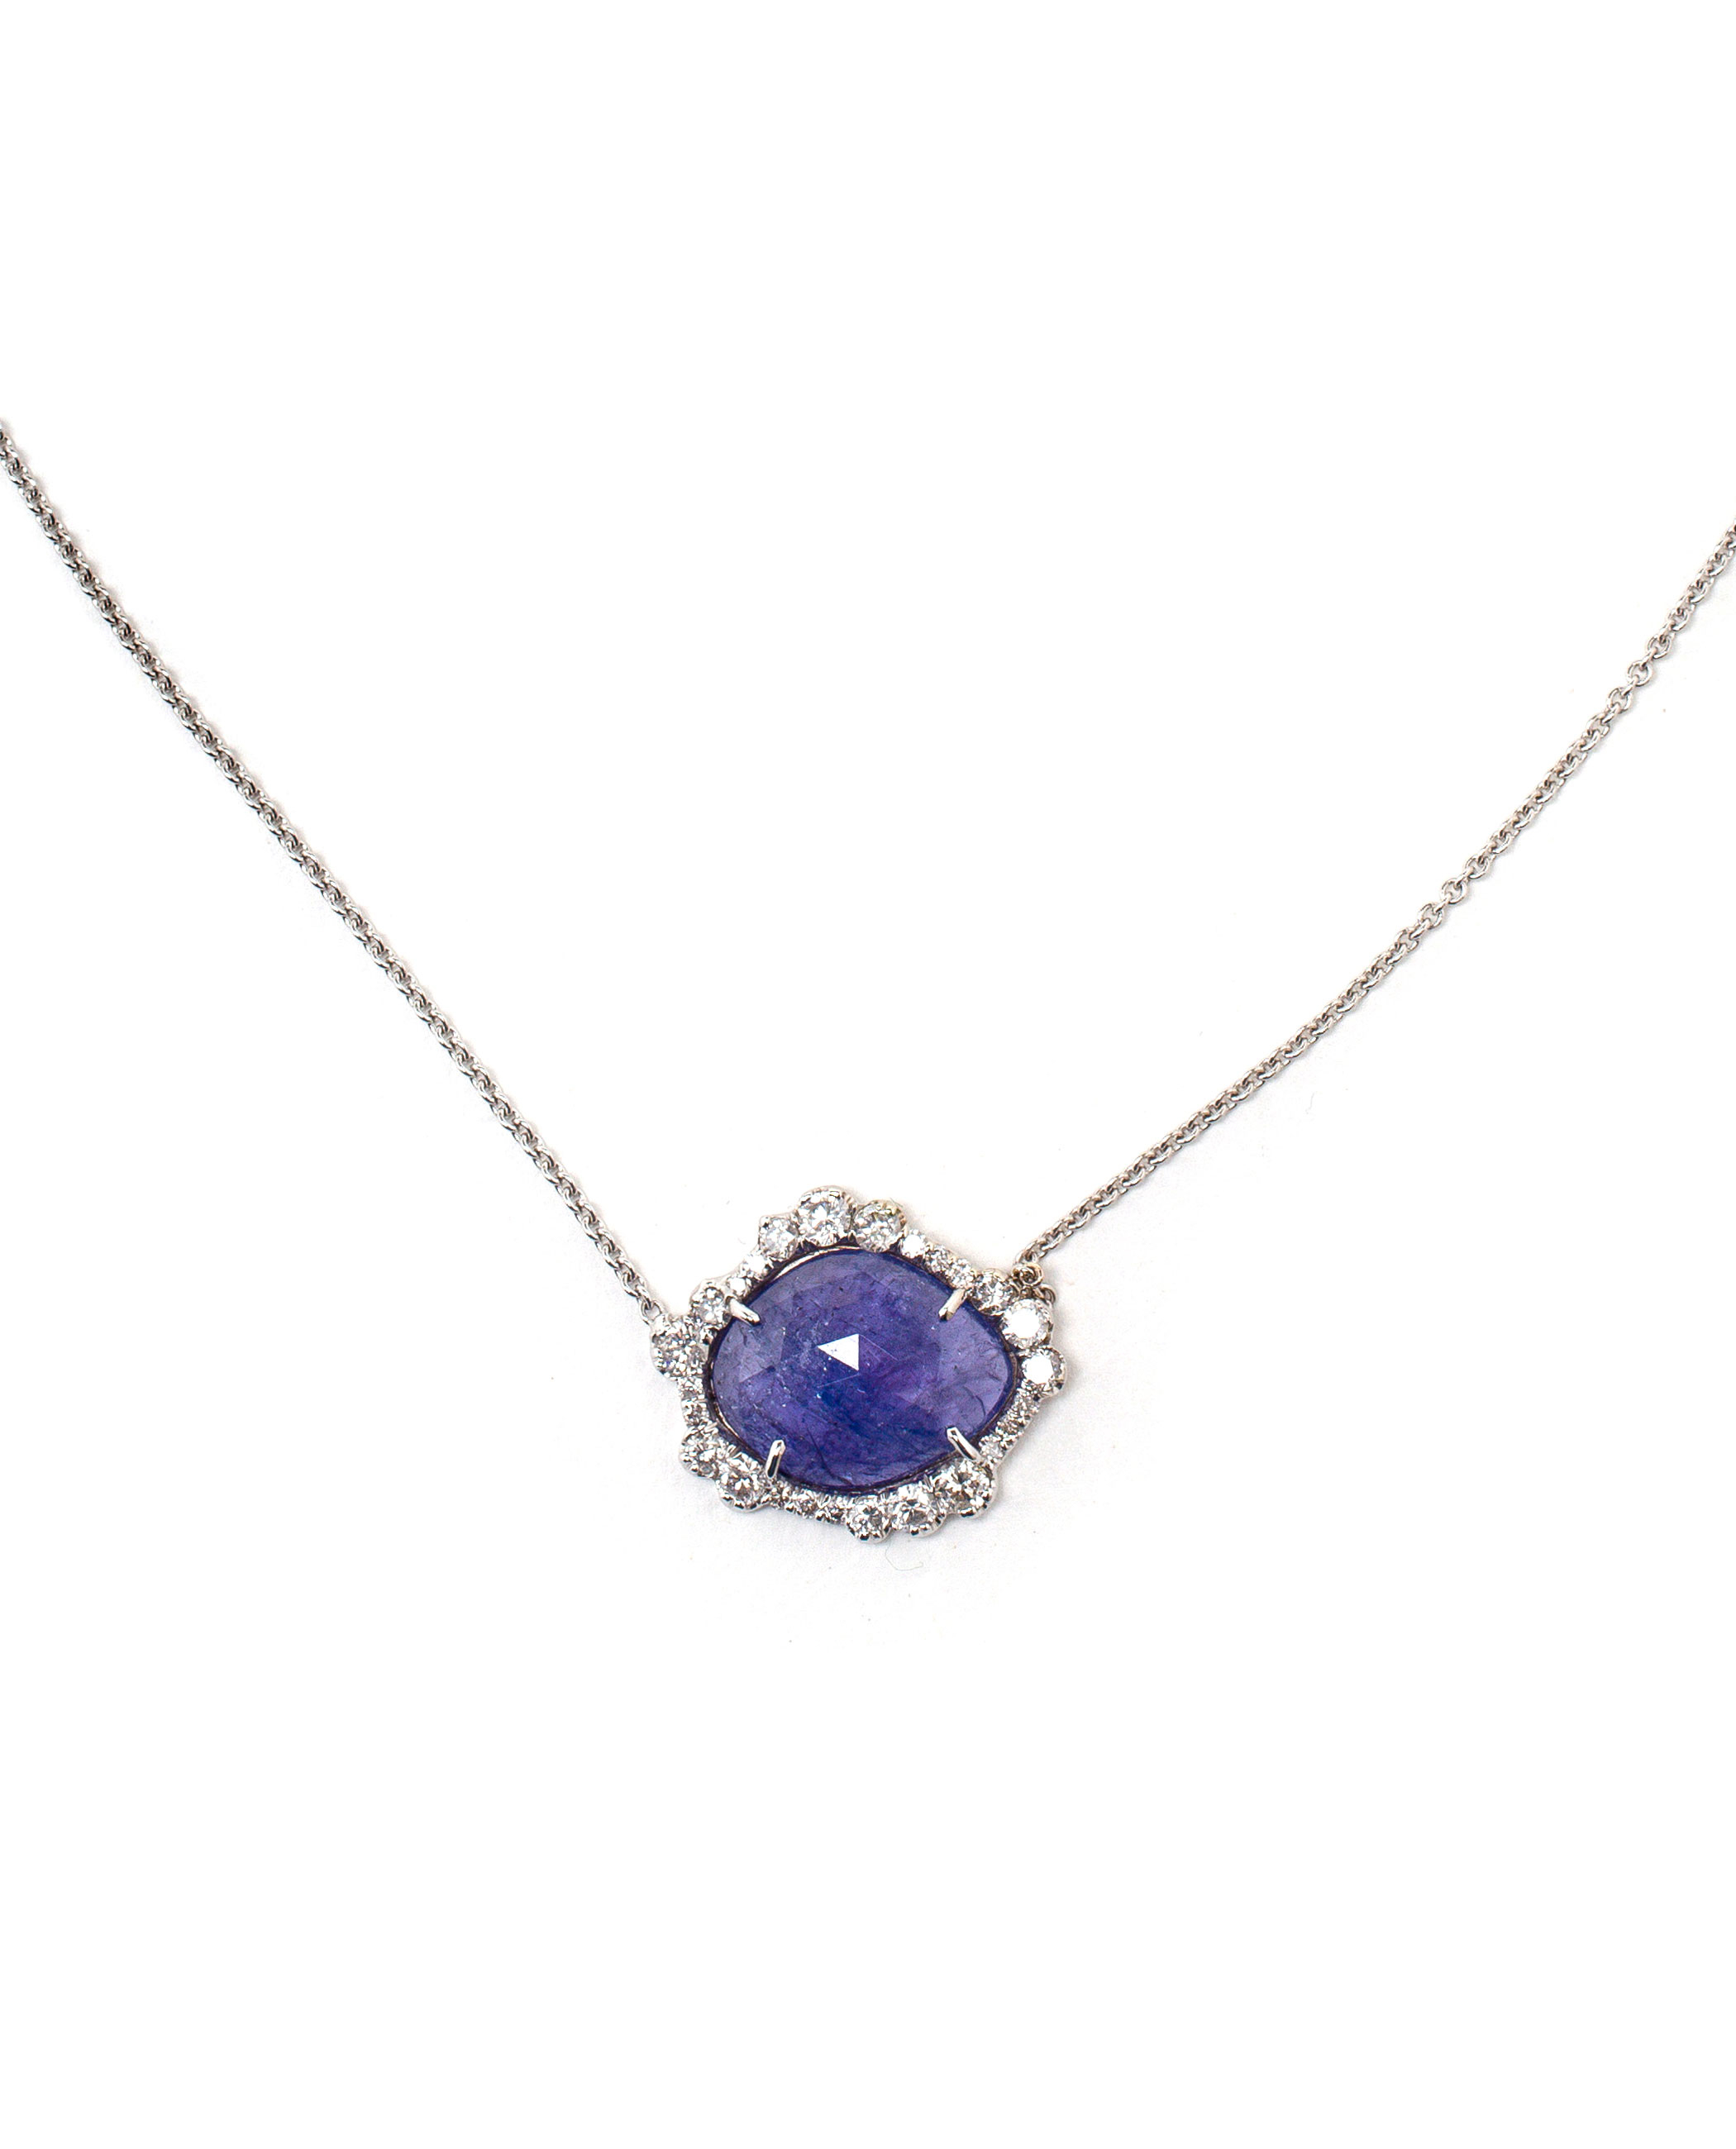 accents cabochon a white the with tanzanite karat chain pendant from pin an necklace diamond sapphires and hangs gold accented